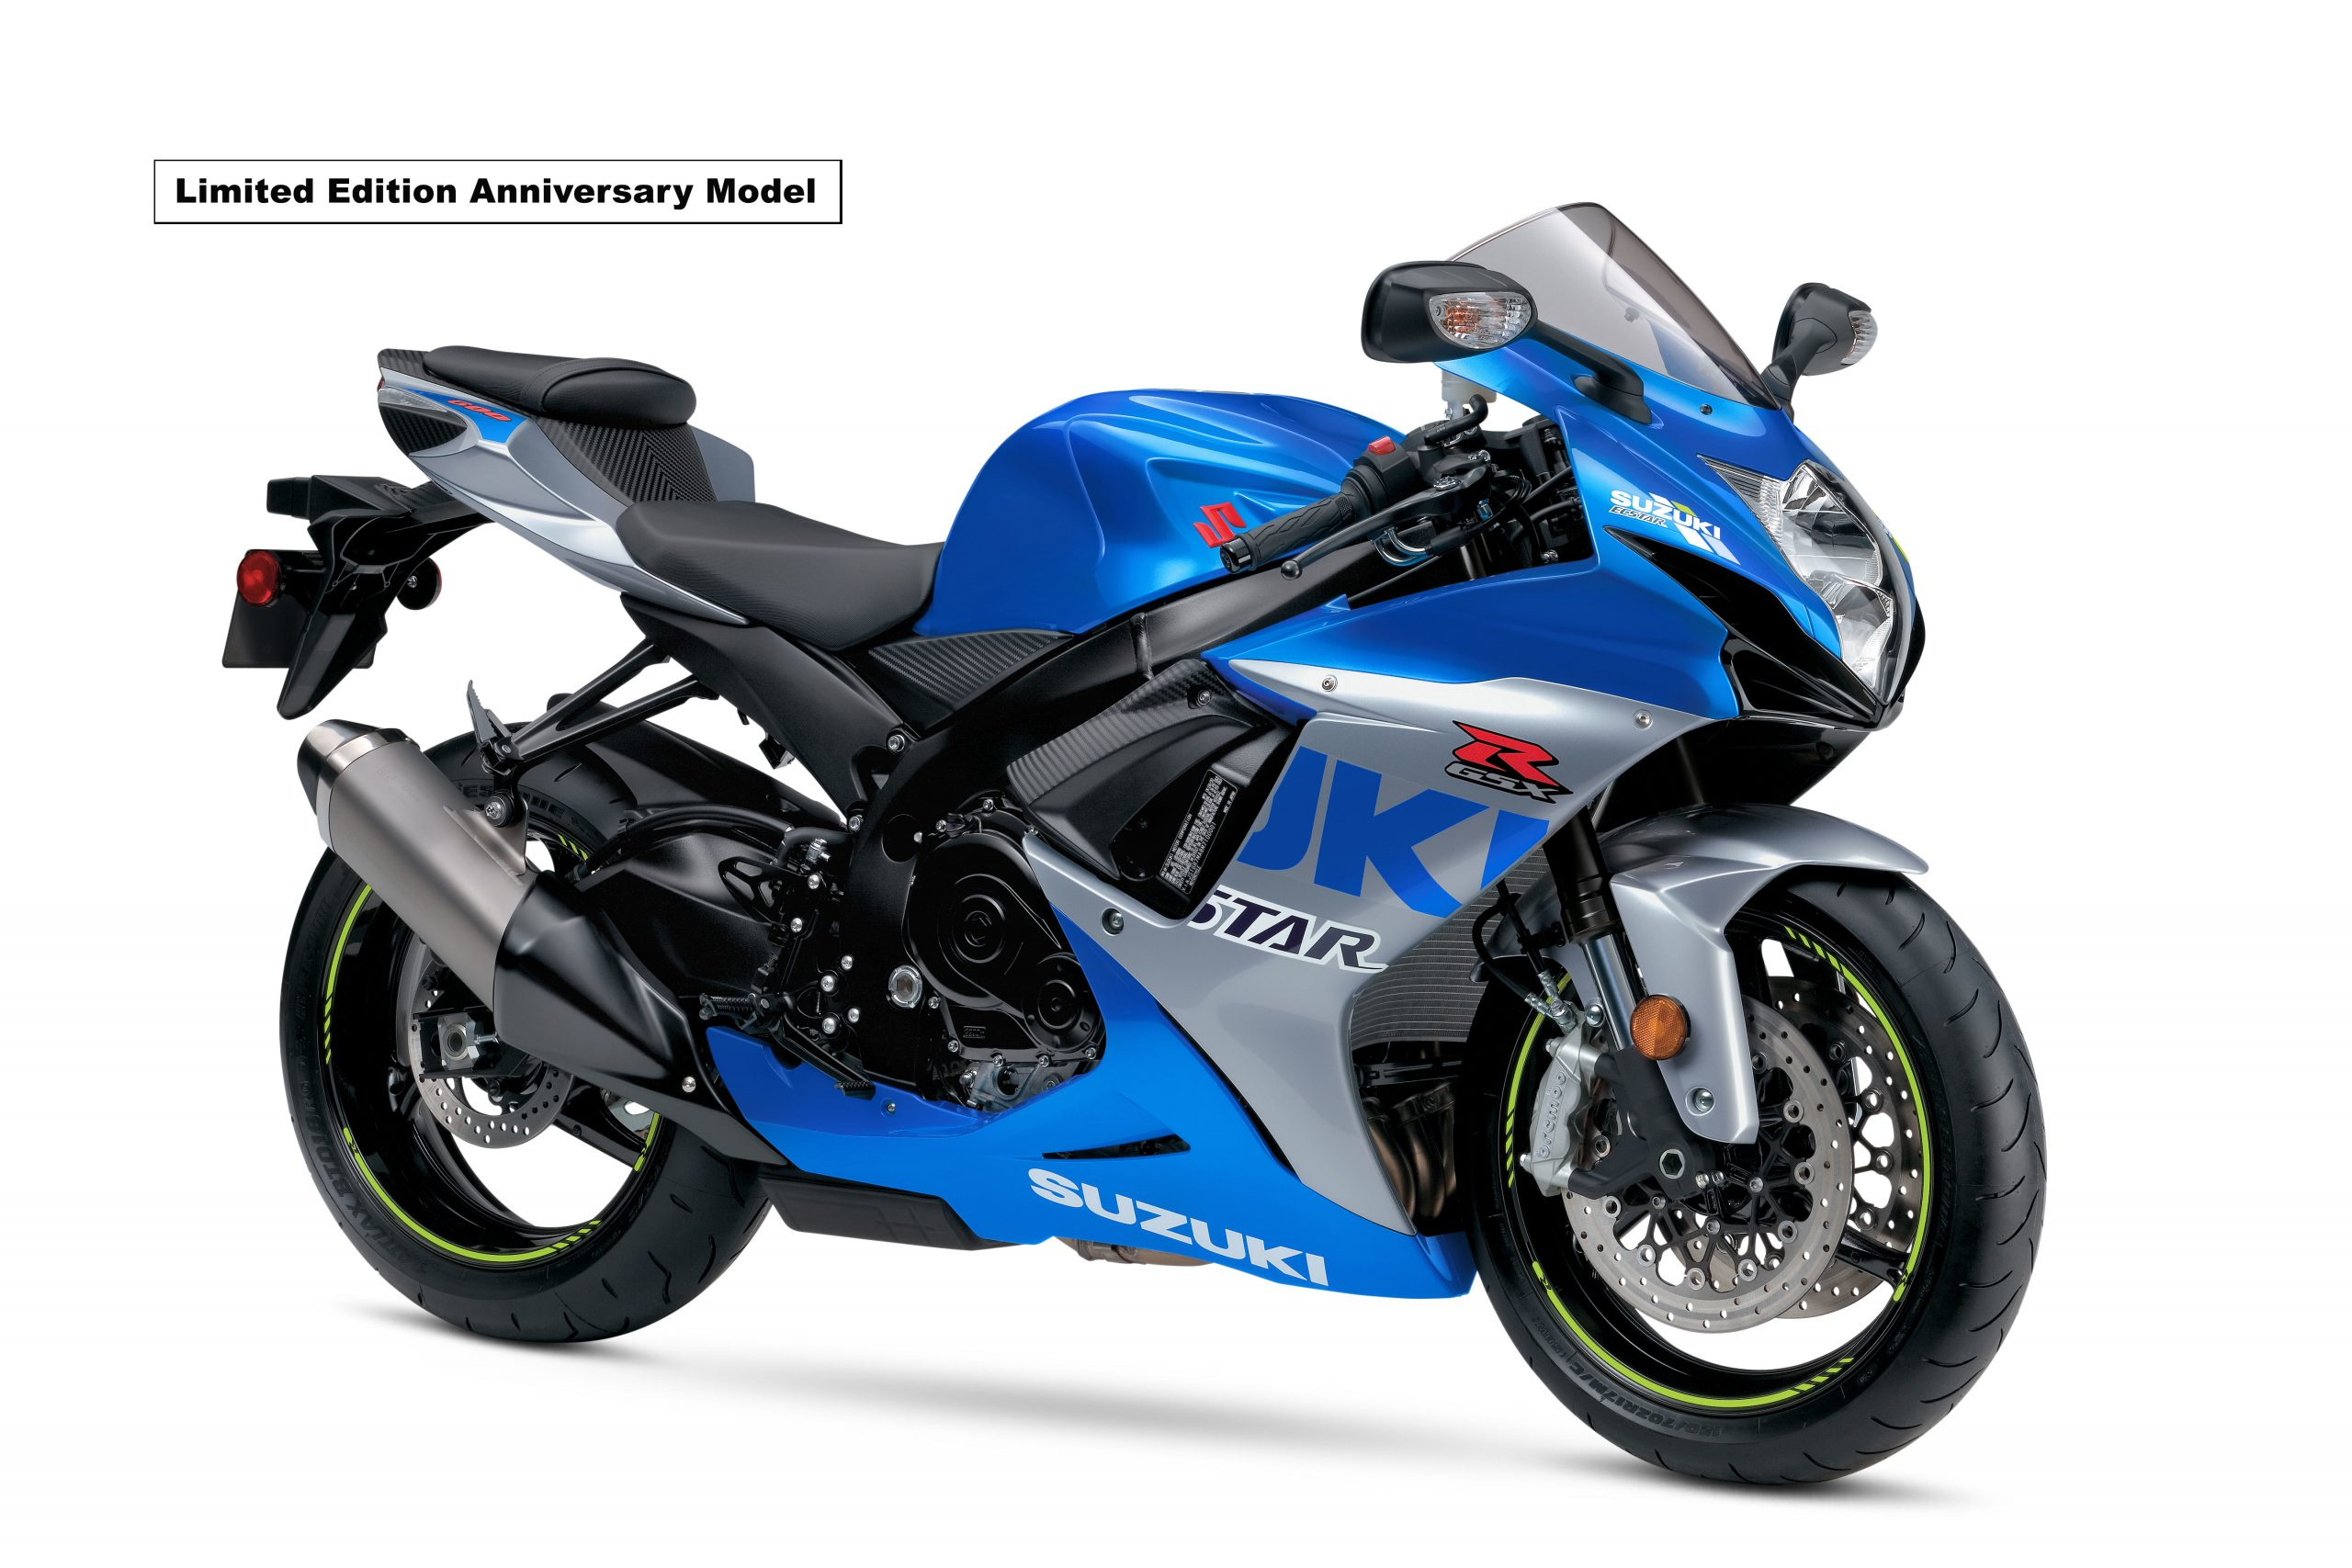 2021 Suzuki GSX-R600 100th Anniversary Edition